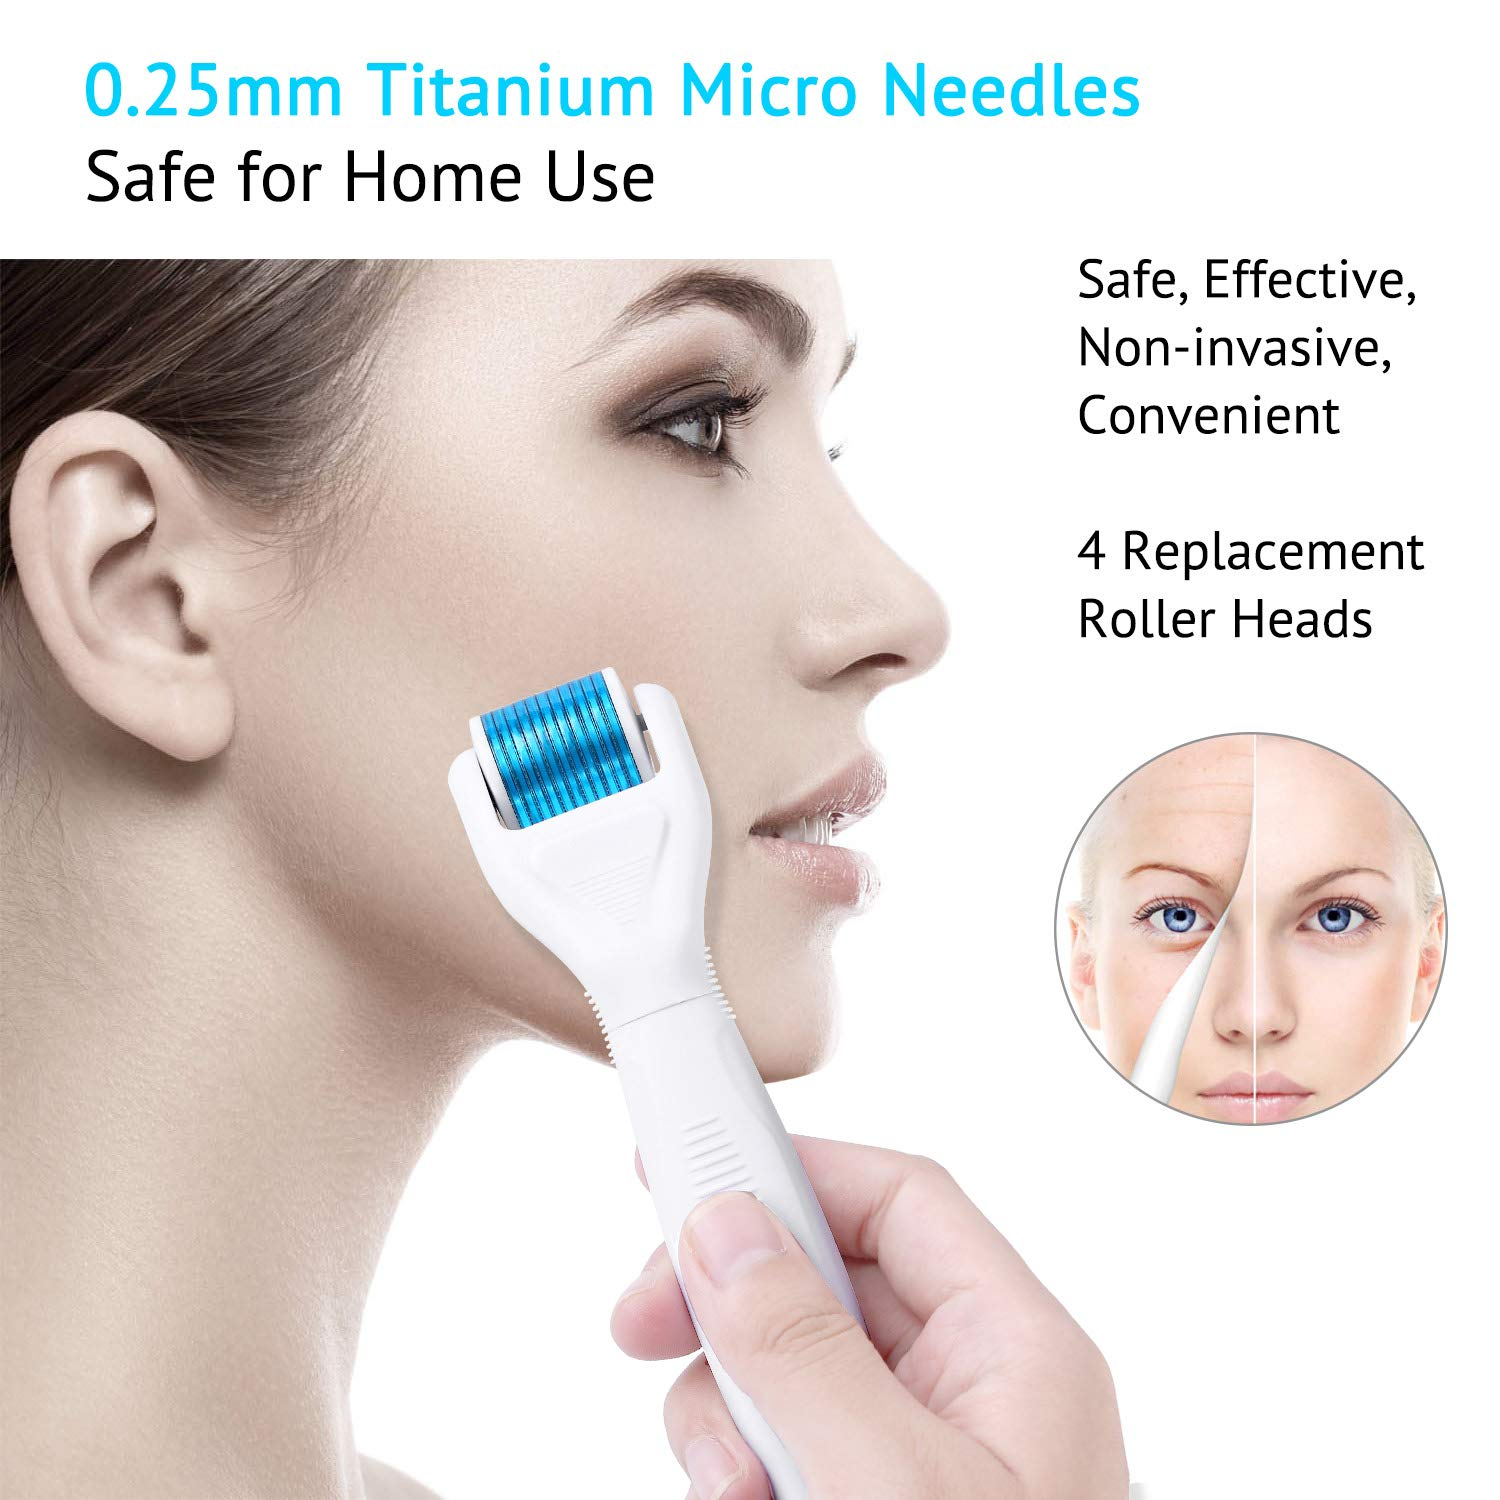 6 in 1 Microneedle Derma Roller .25mm Kit for Face and Body - 300/720/1200 Titanium Dermaroller Micro Needle Facial Roller